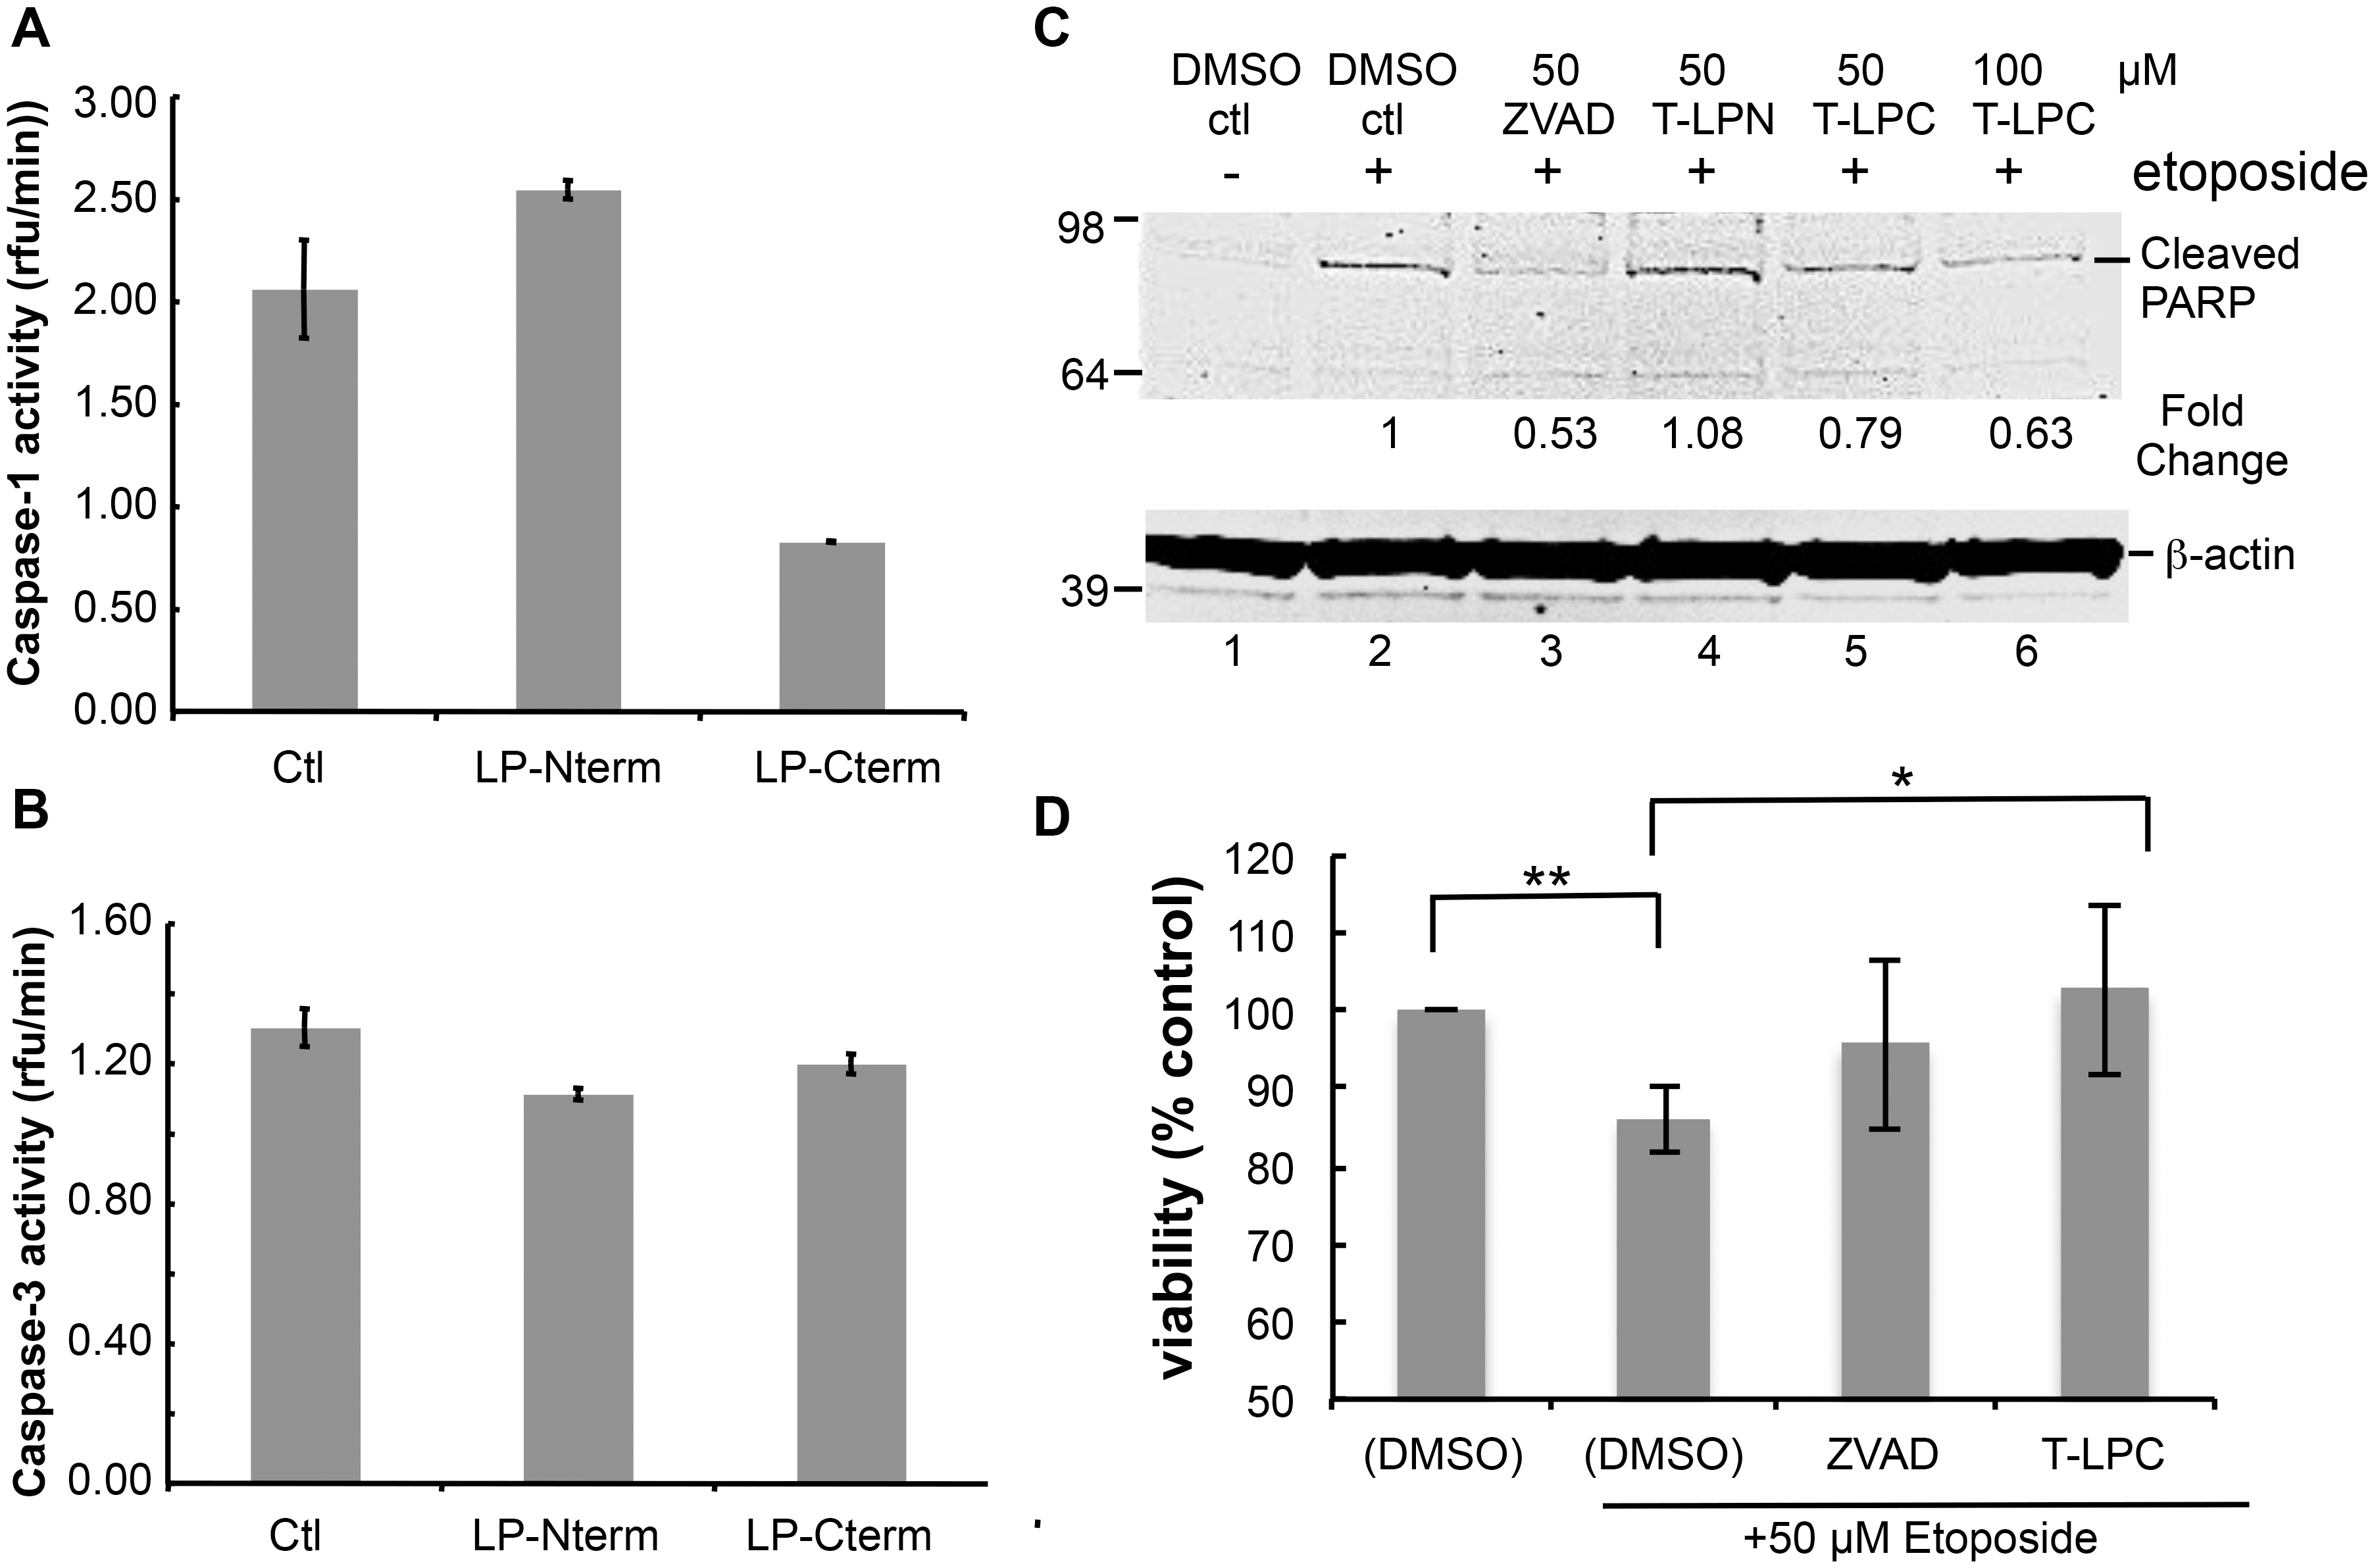 Peptides containing LANA caspase cleavage sites inhibit caspase activity, decrease PARP cleavage and increase cell viability.